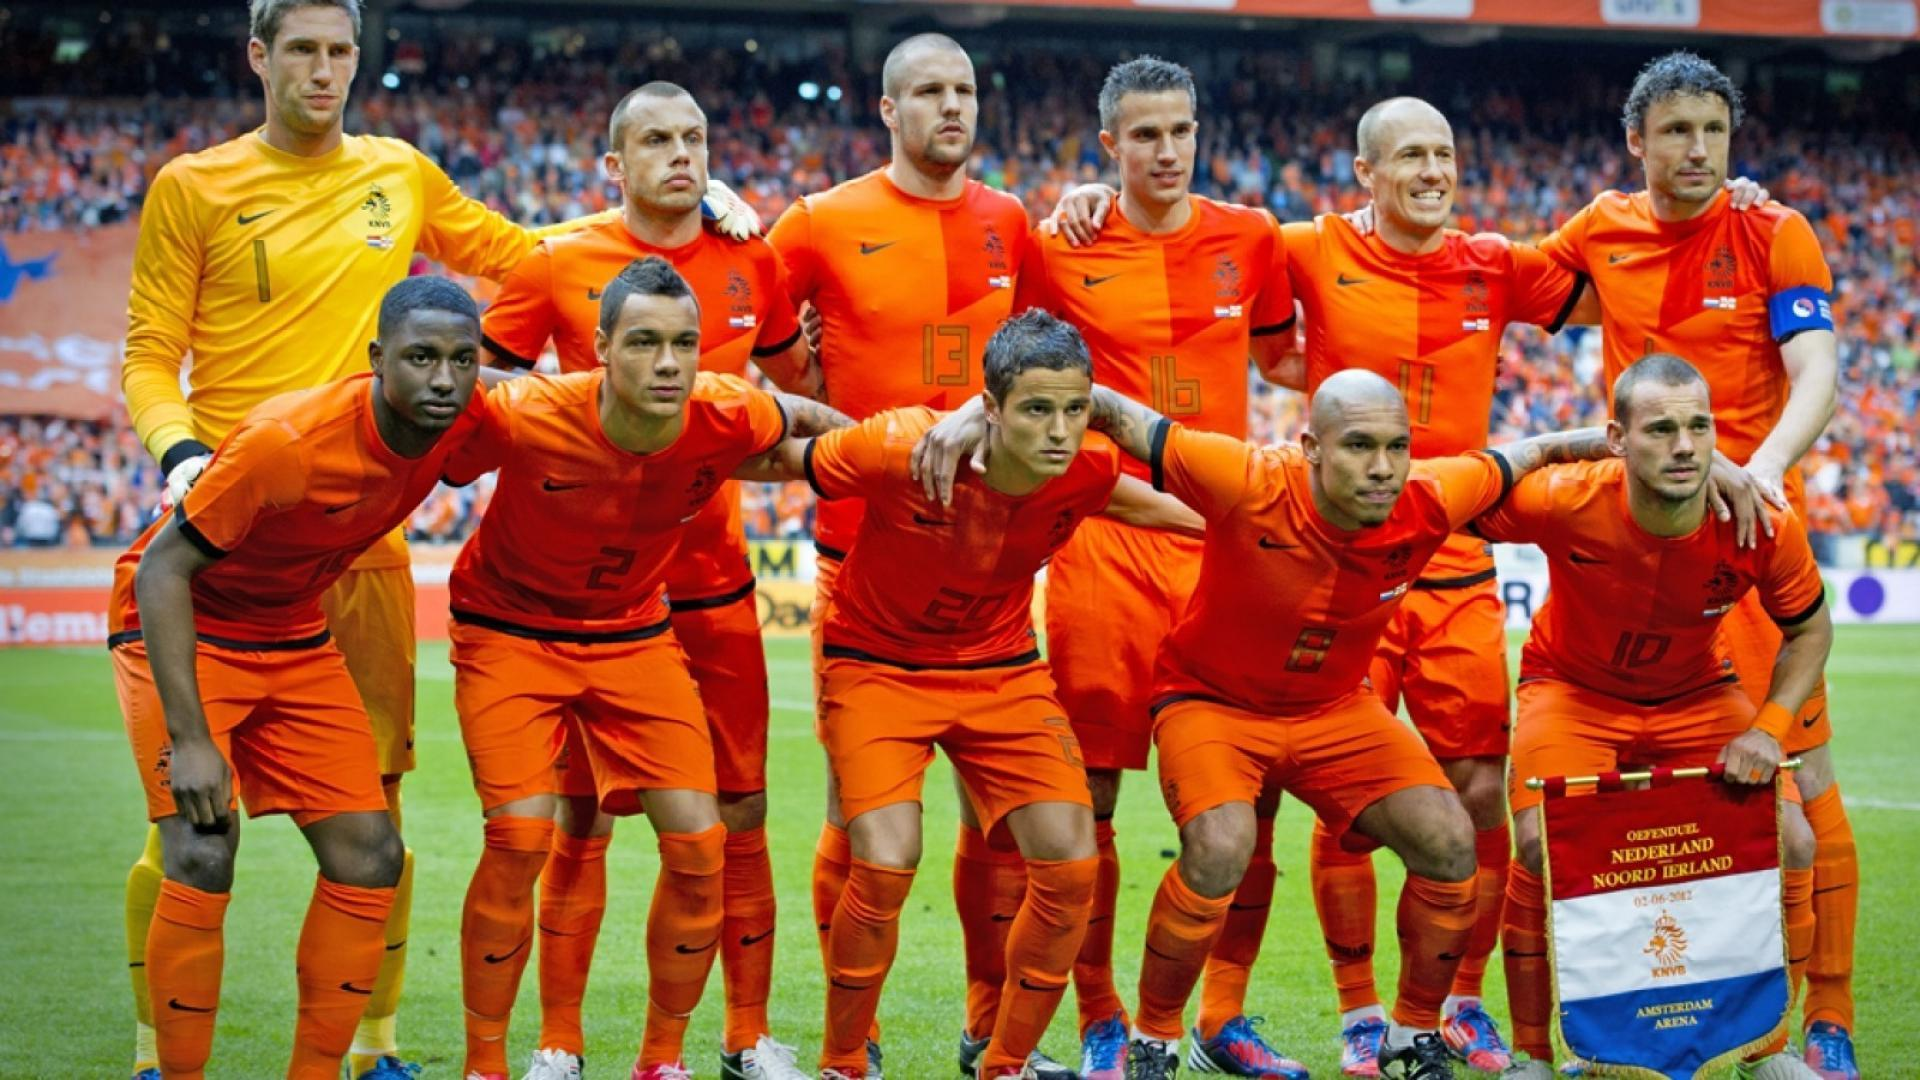 Netherlands National Football Team Zoom Background 6